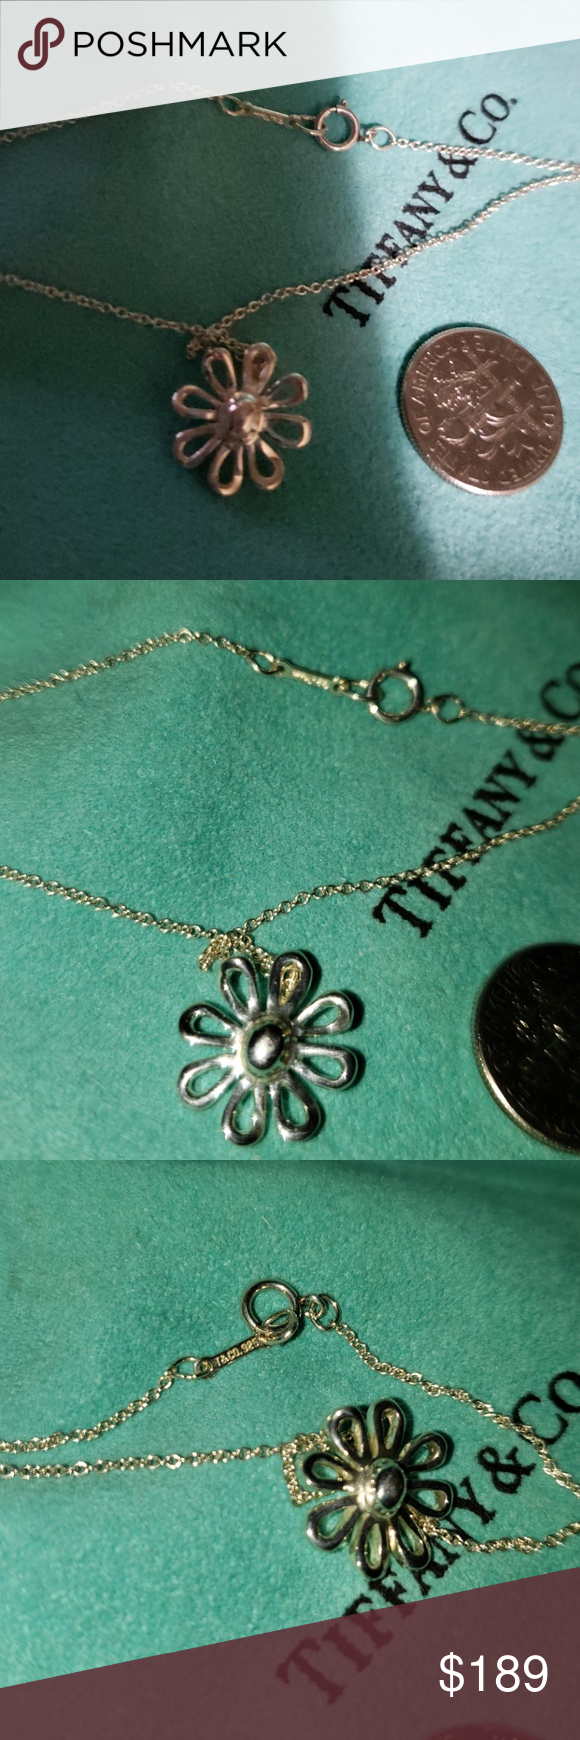 47f15a0d1 TIFFANY PALOMA PICASSO STERLING SILVER DAISY, 9N HALLMARKED 16 INCH TIFFANY/PALOMA  PICASSO CHAIN! (Last 2 pics for value comparrison only) Tiffany & Co.